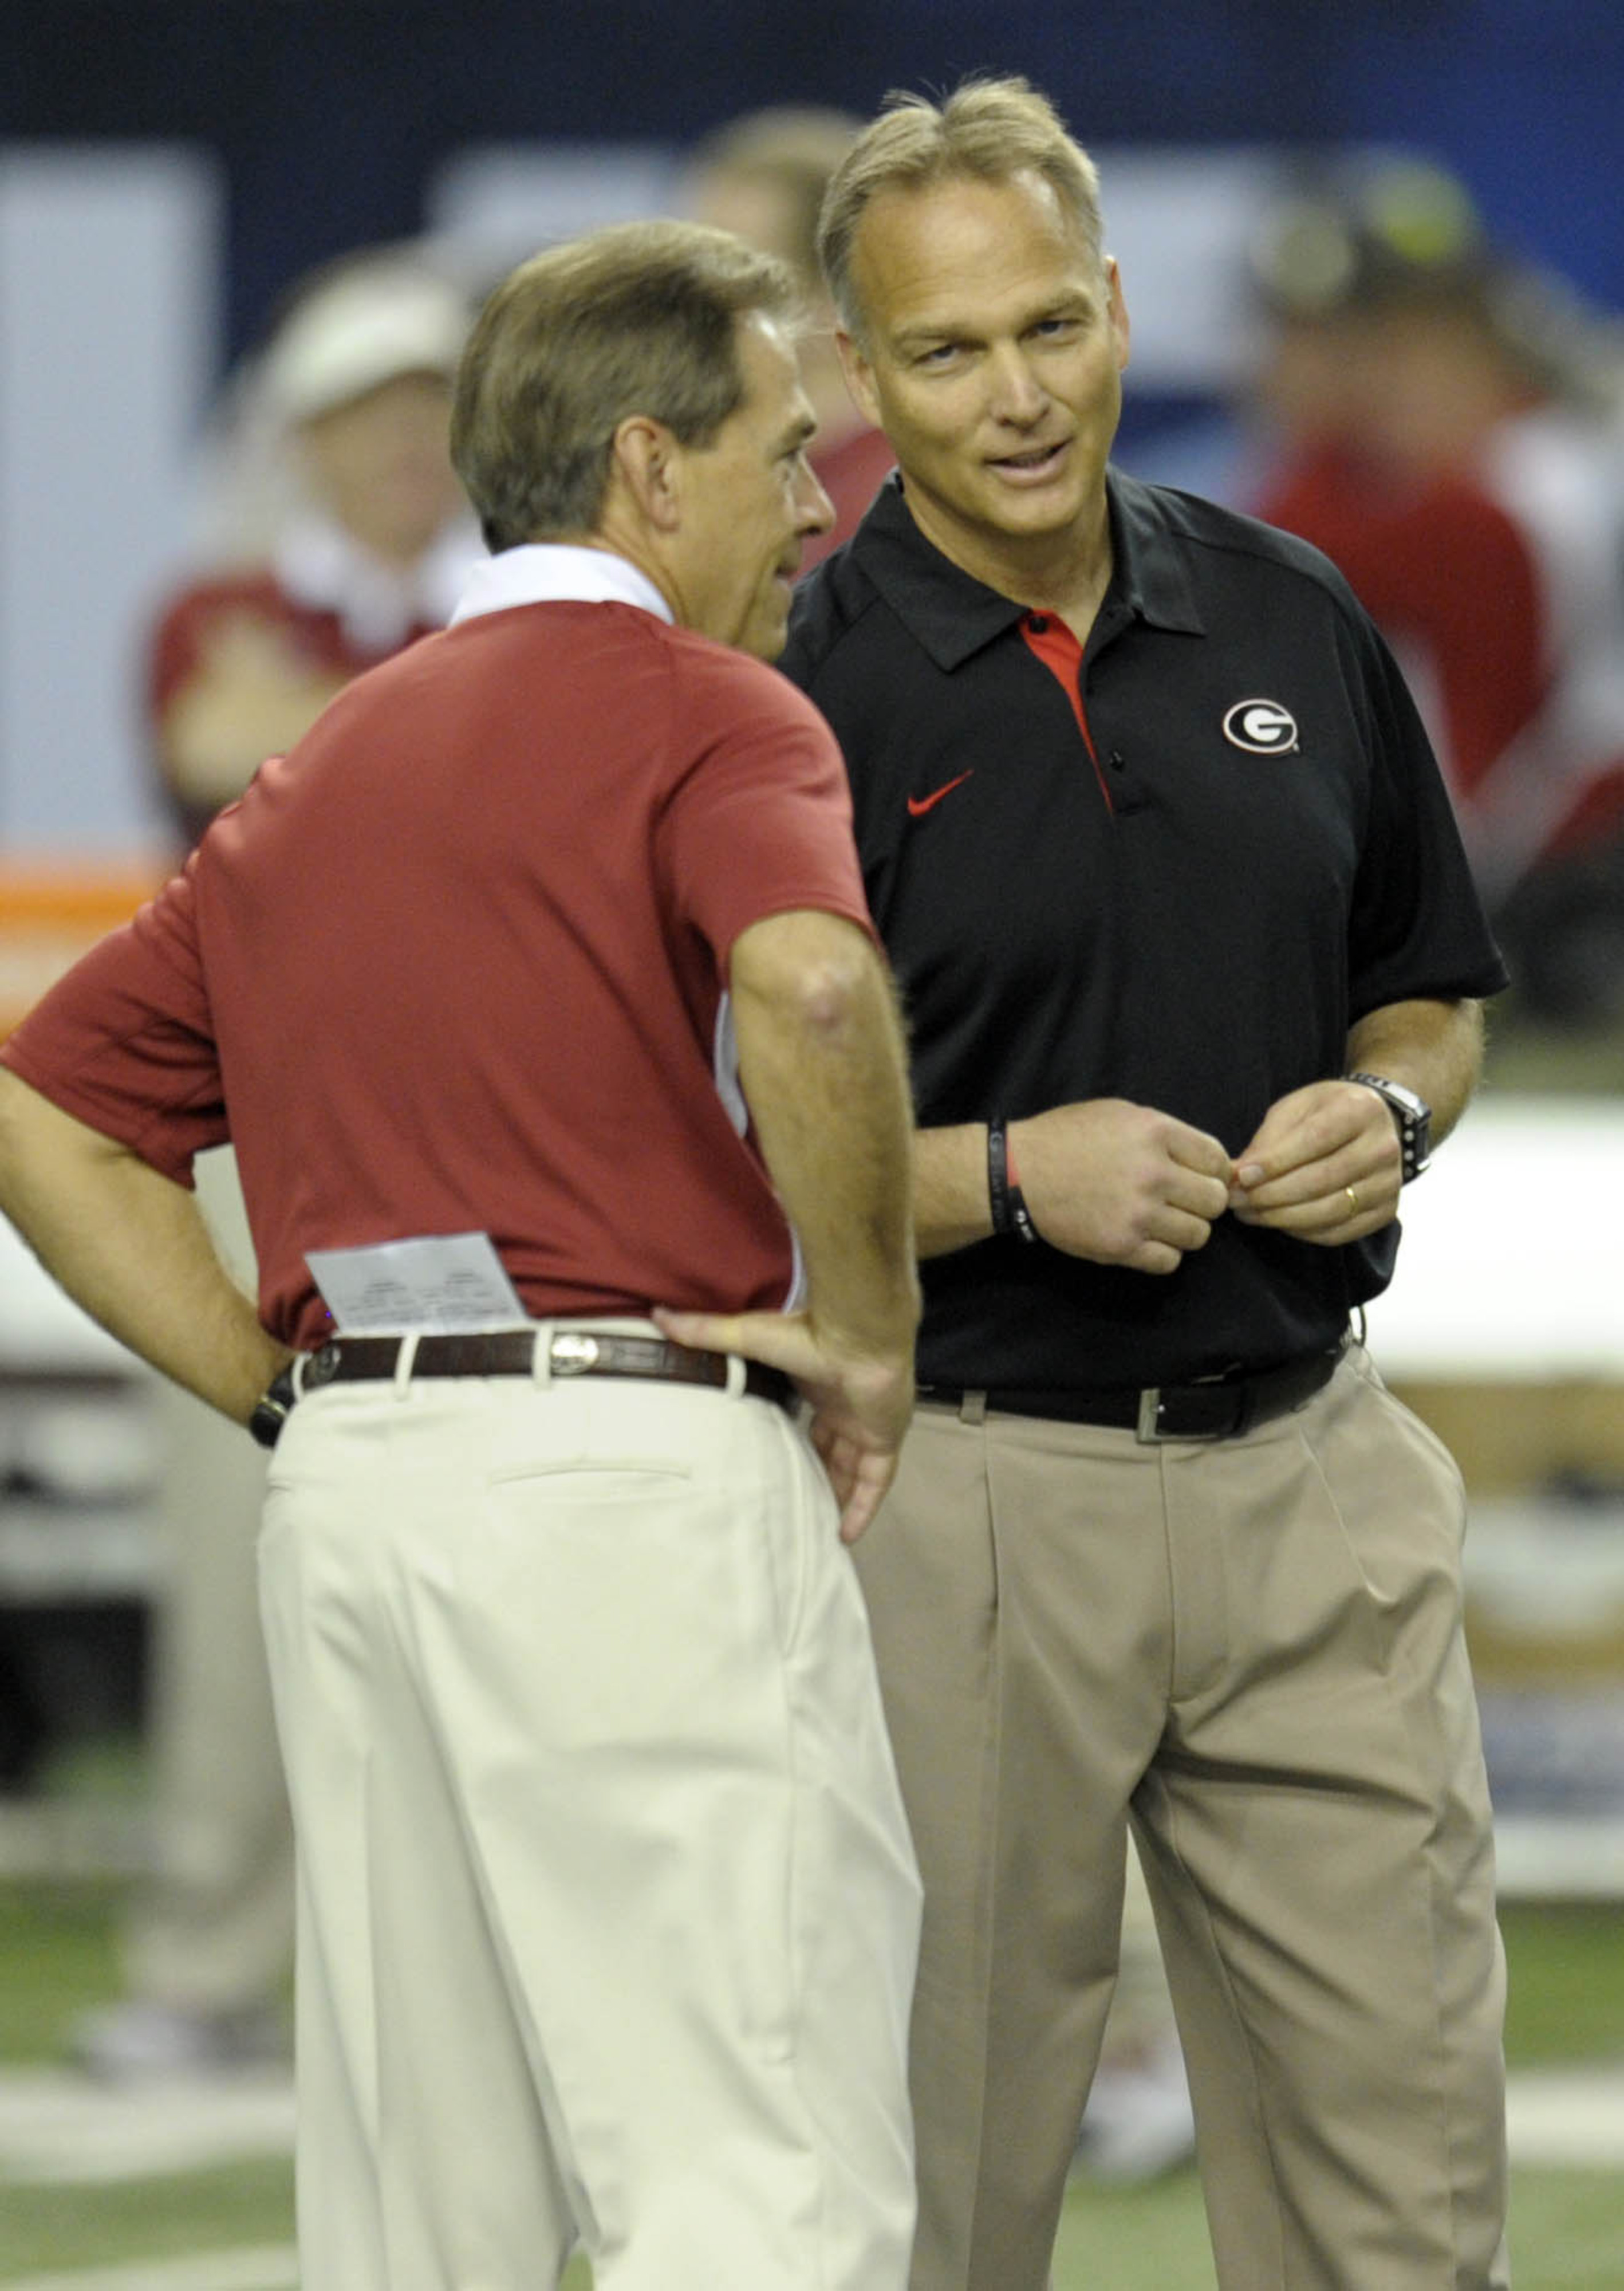 The architect of the most invincible dynastic juggernaut in college football history (left) spoke to the mediocre beneficiary of a weak schedule who lacks killer instinct (right) before their 11-1 teams played a game decided on the final snap.